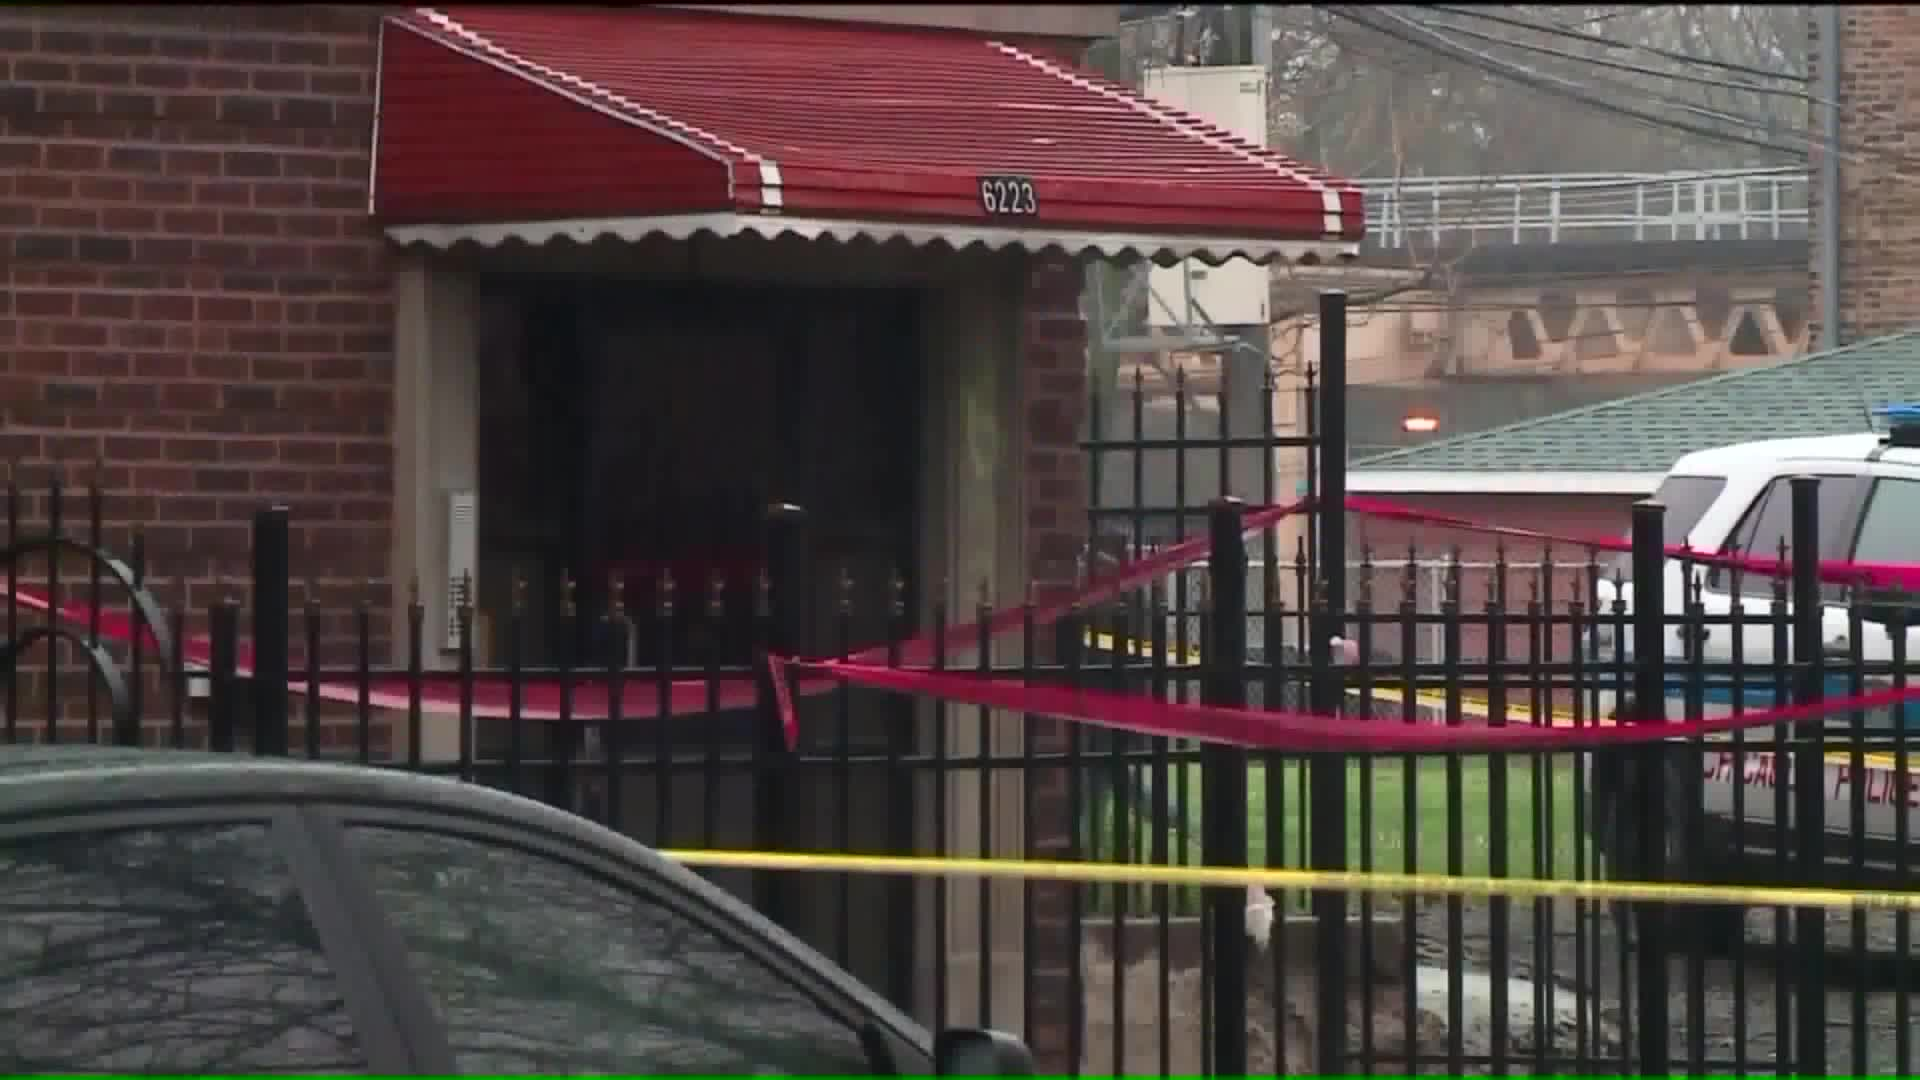 1 Killed, 4 Wounded In Chicago Shootings Just Hours Apart